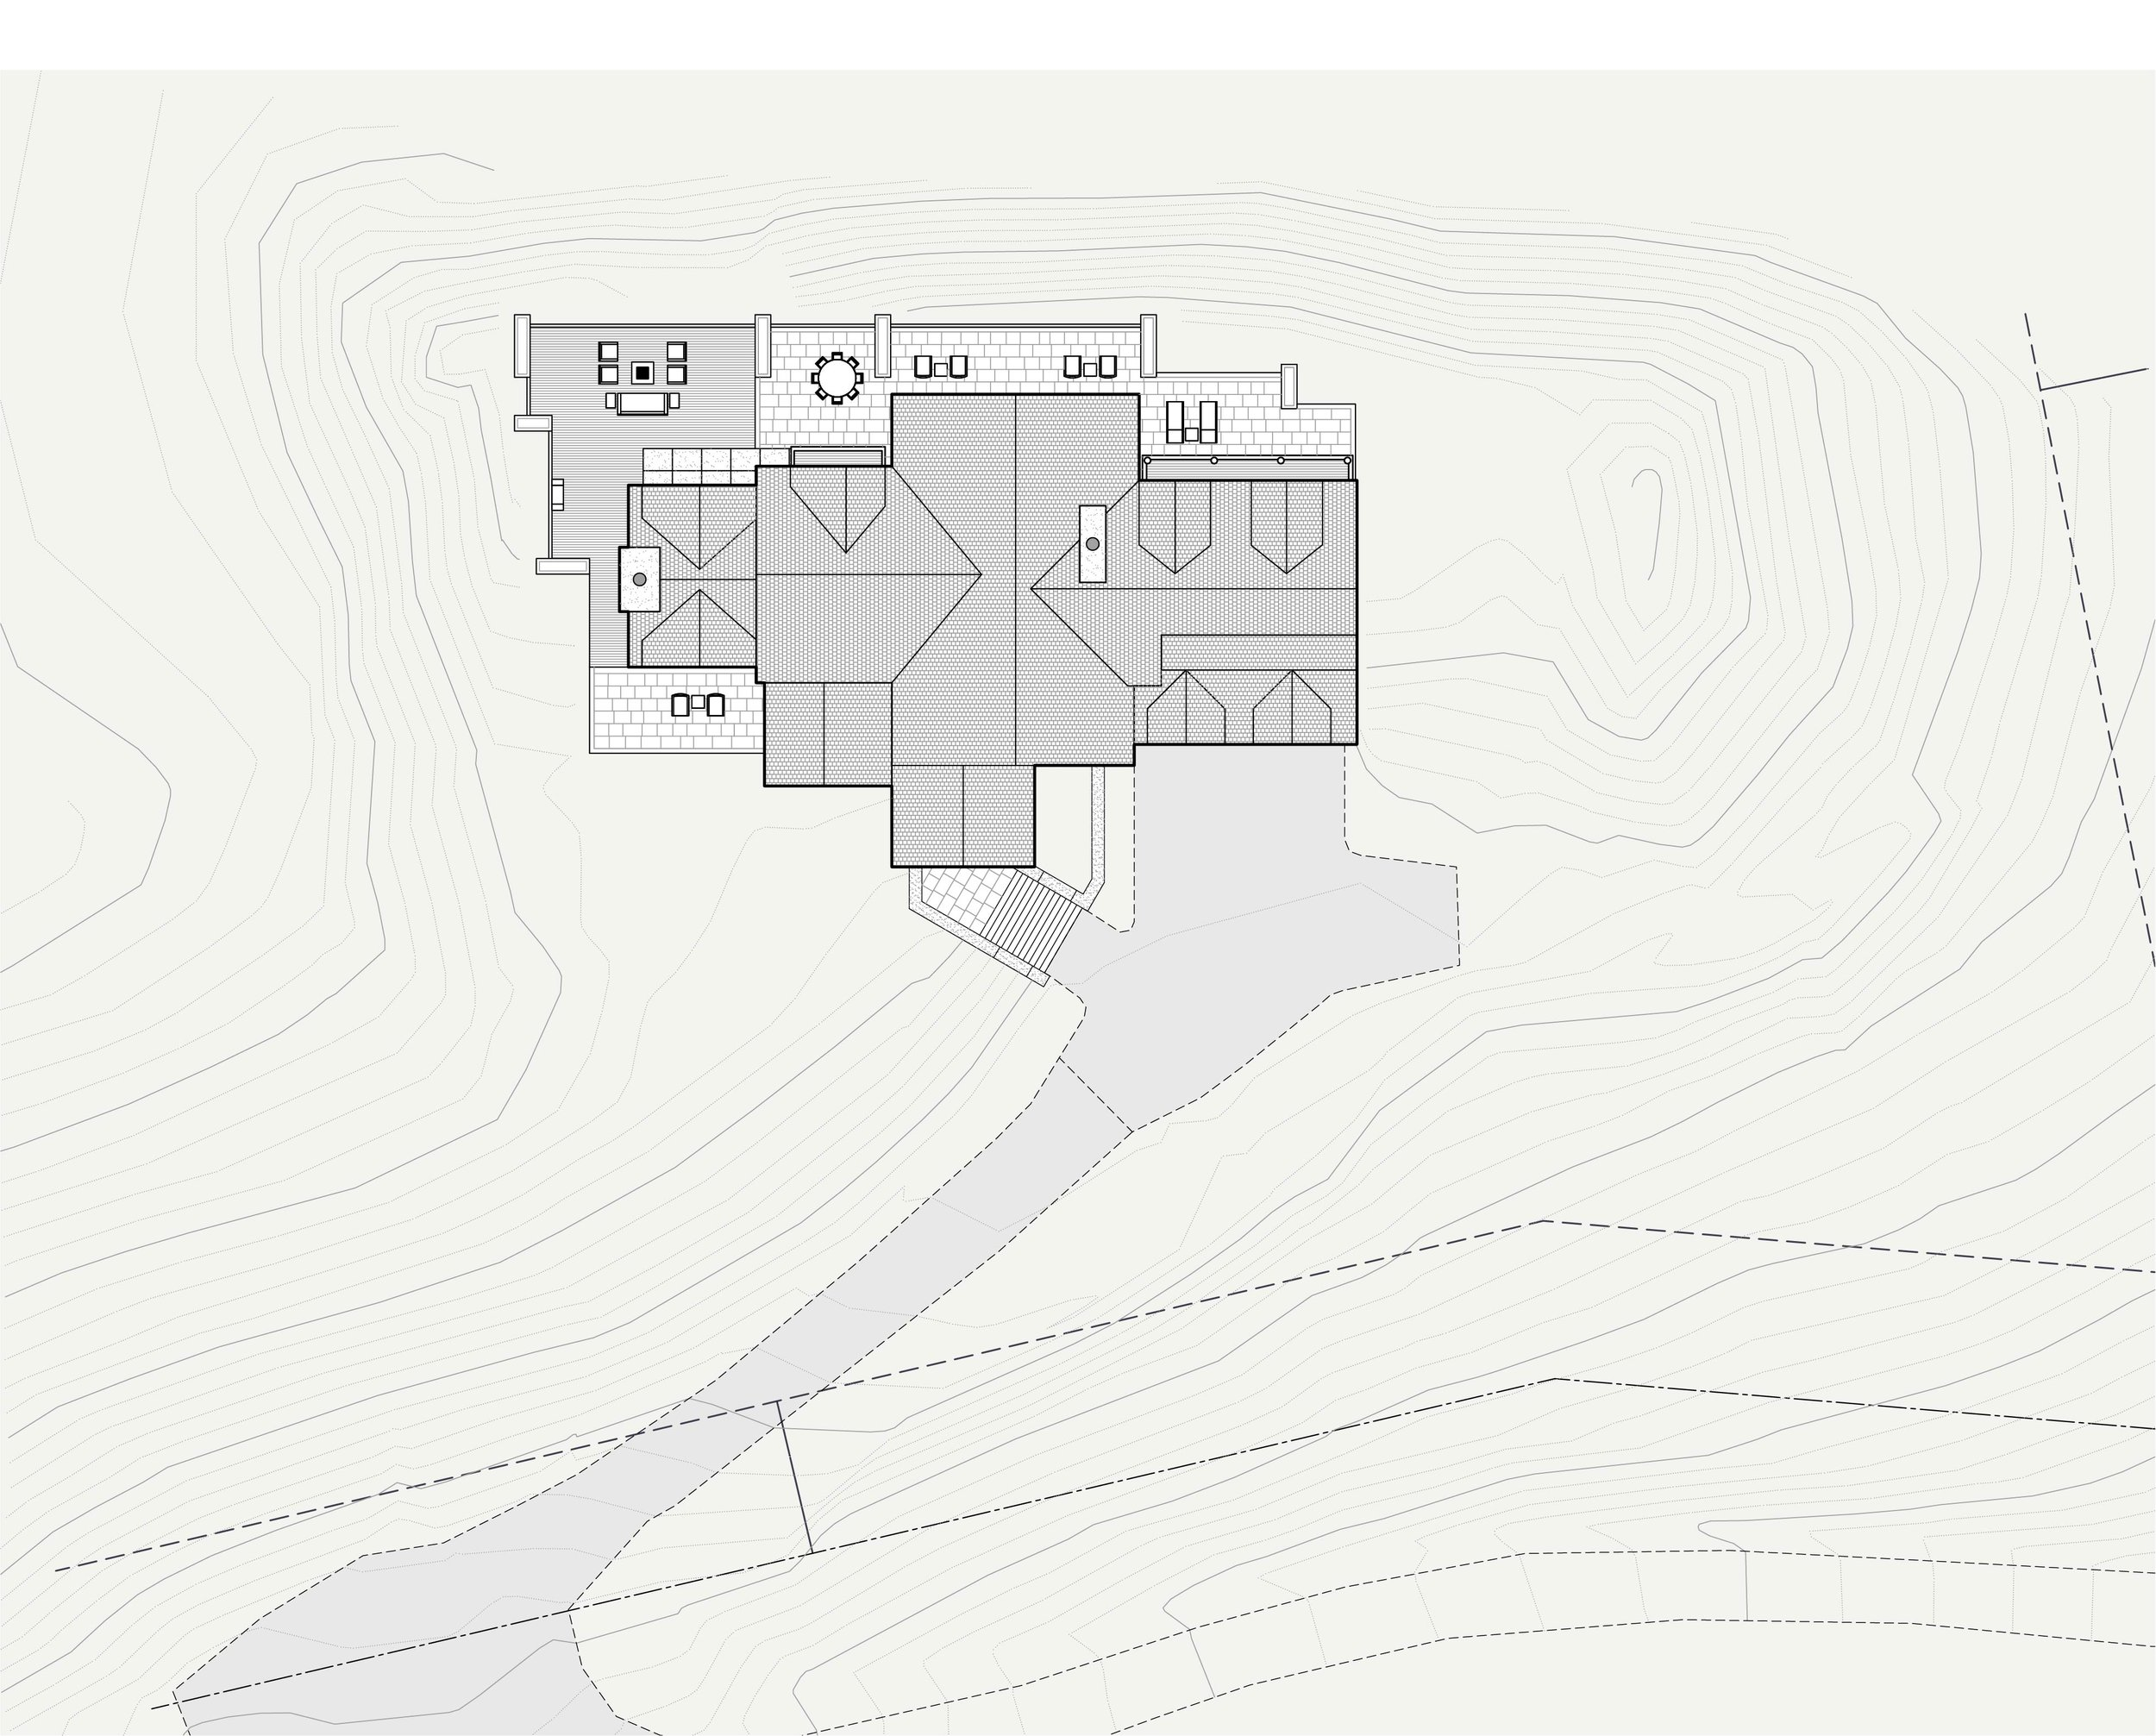 Hutchins_MARKETING roof and site plan.jpg